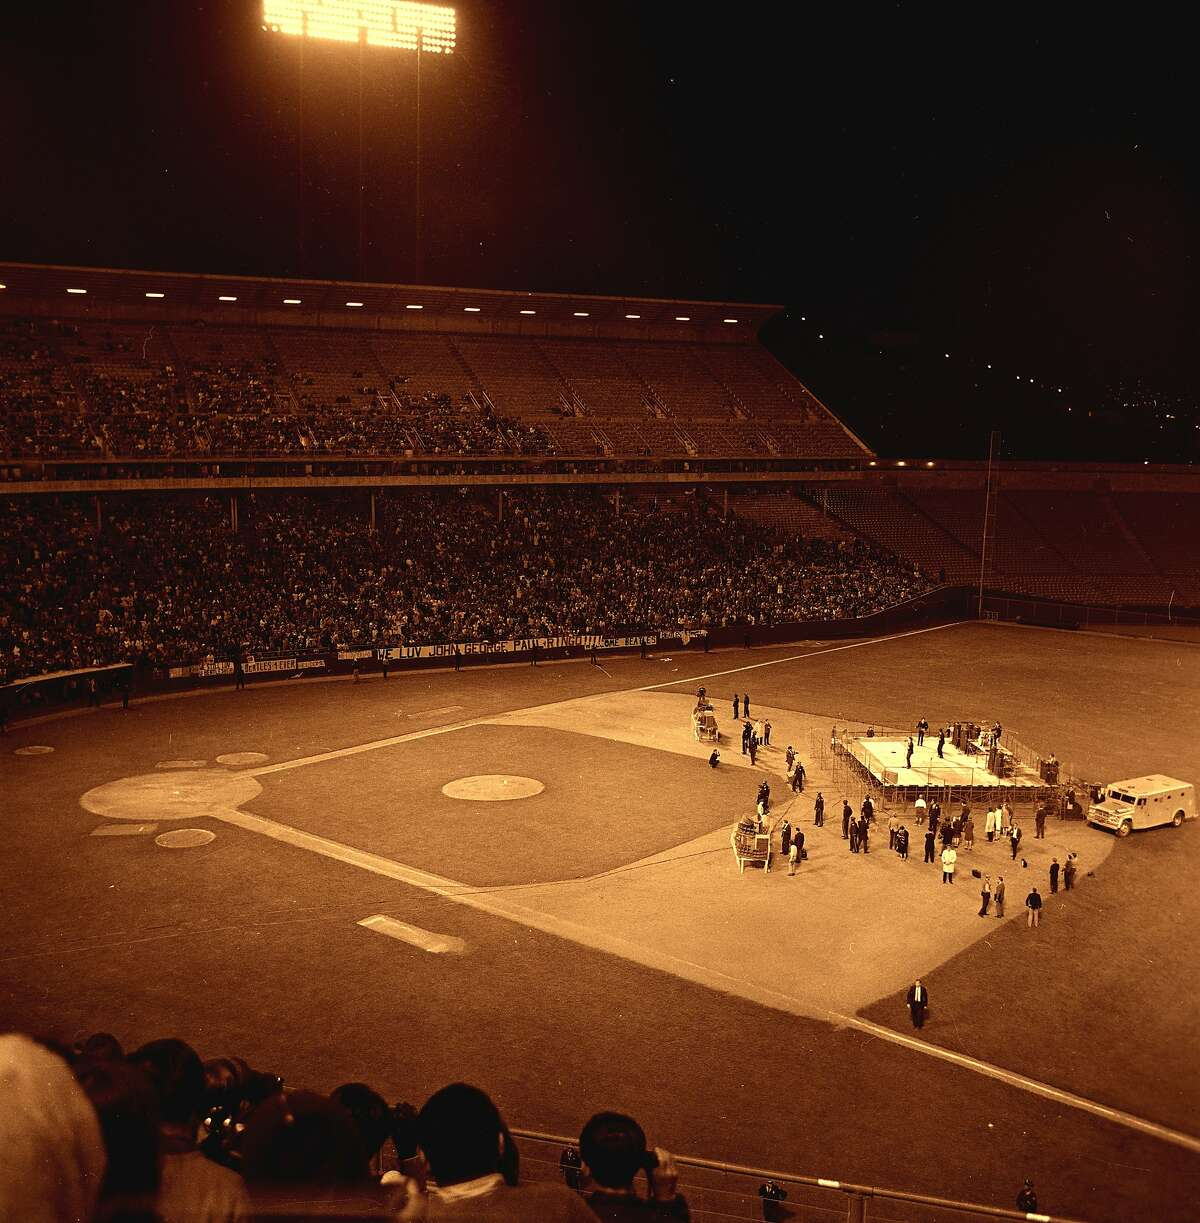 The Beatles perform at Candlestick Park for the last time on Aug. 29, 1966.